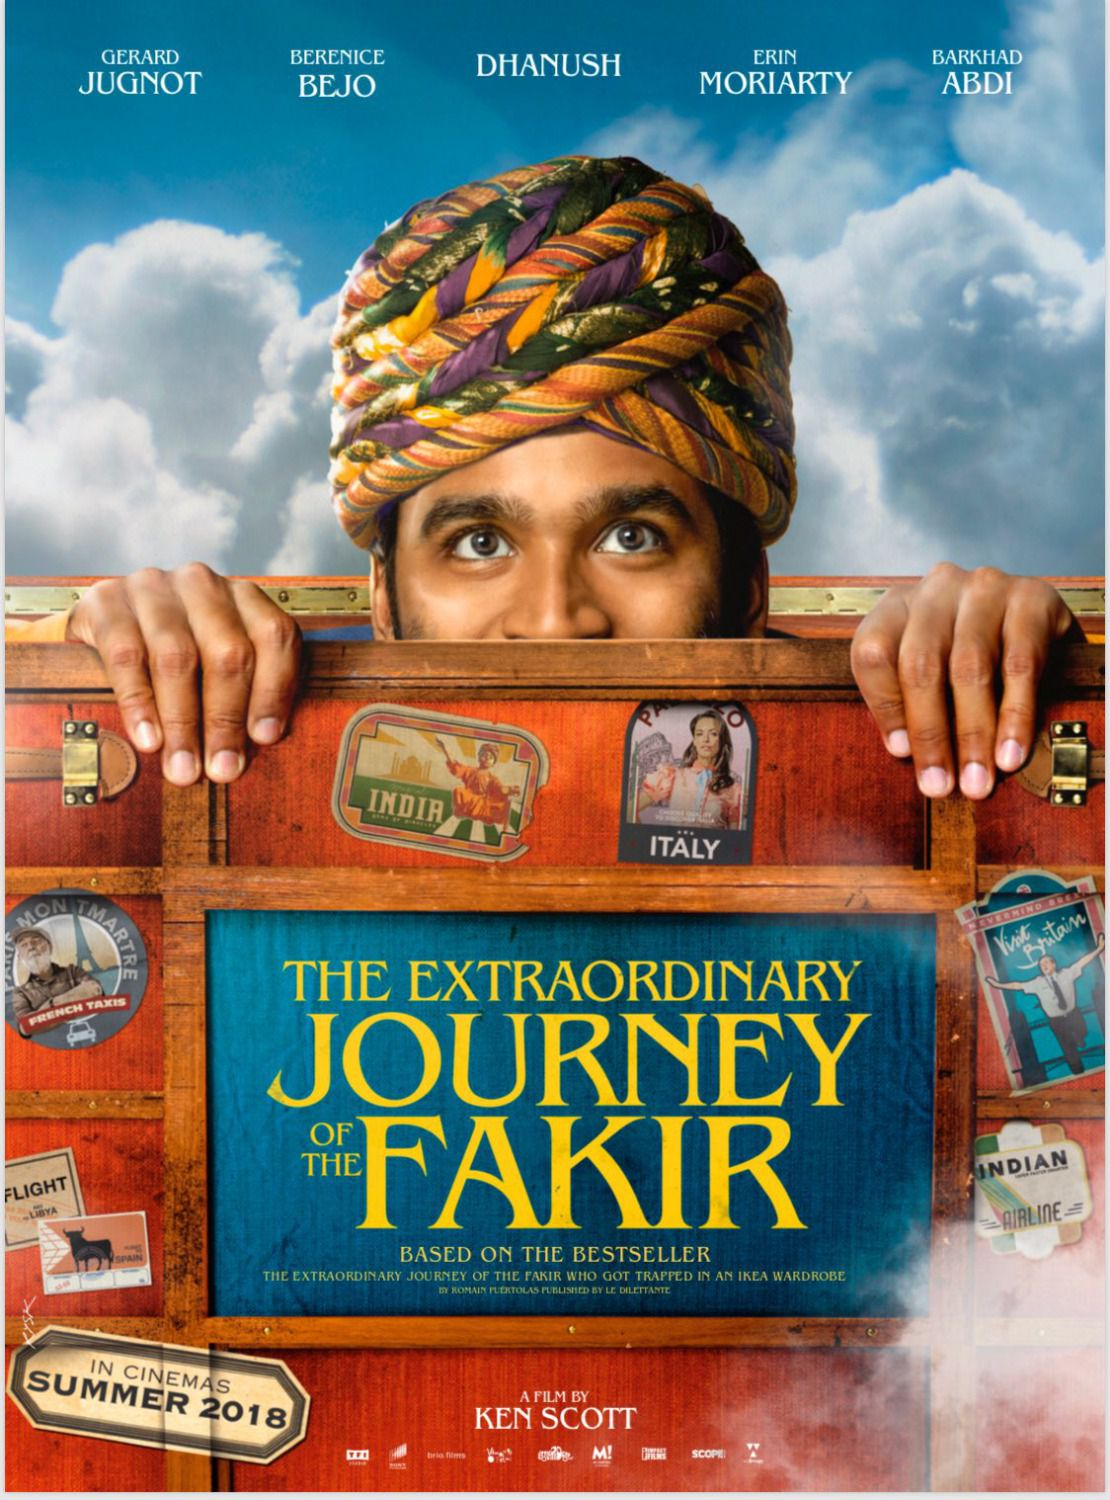 The Extraordinary Journey of the Fakir - film poster